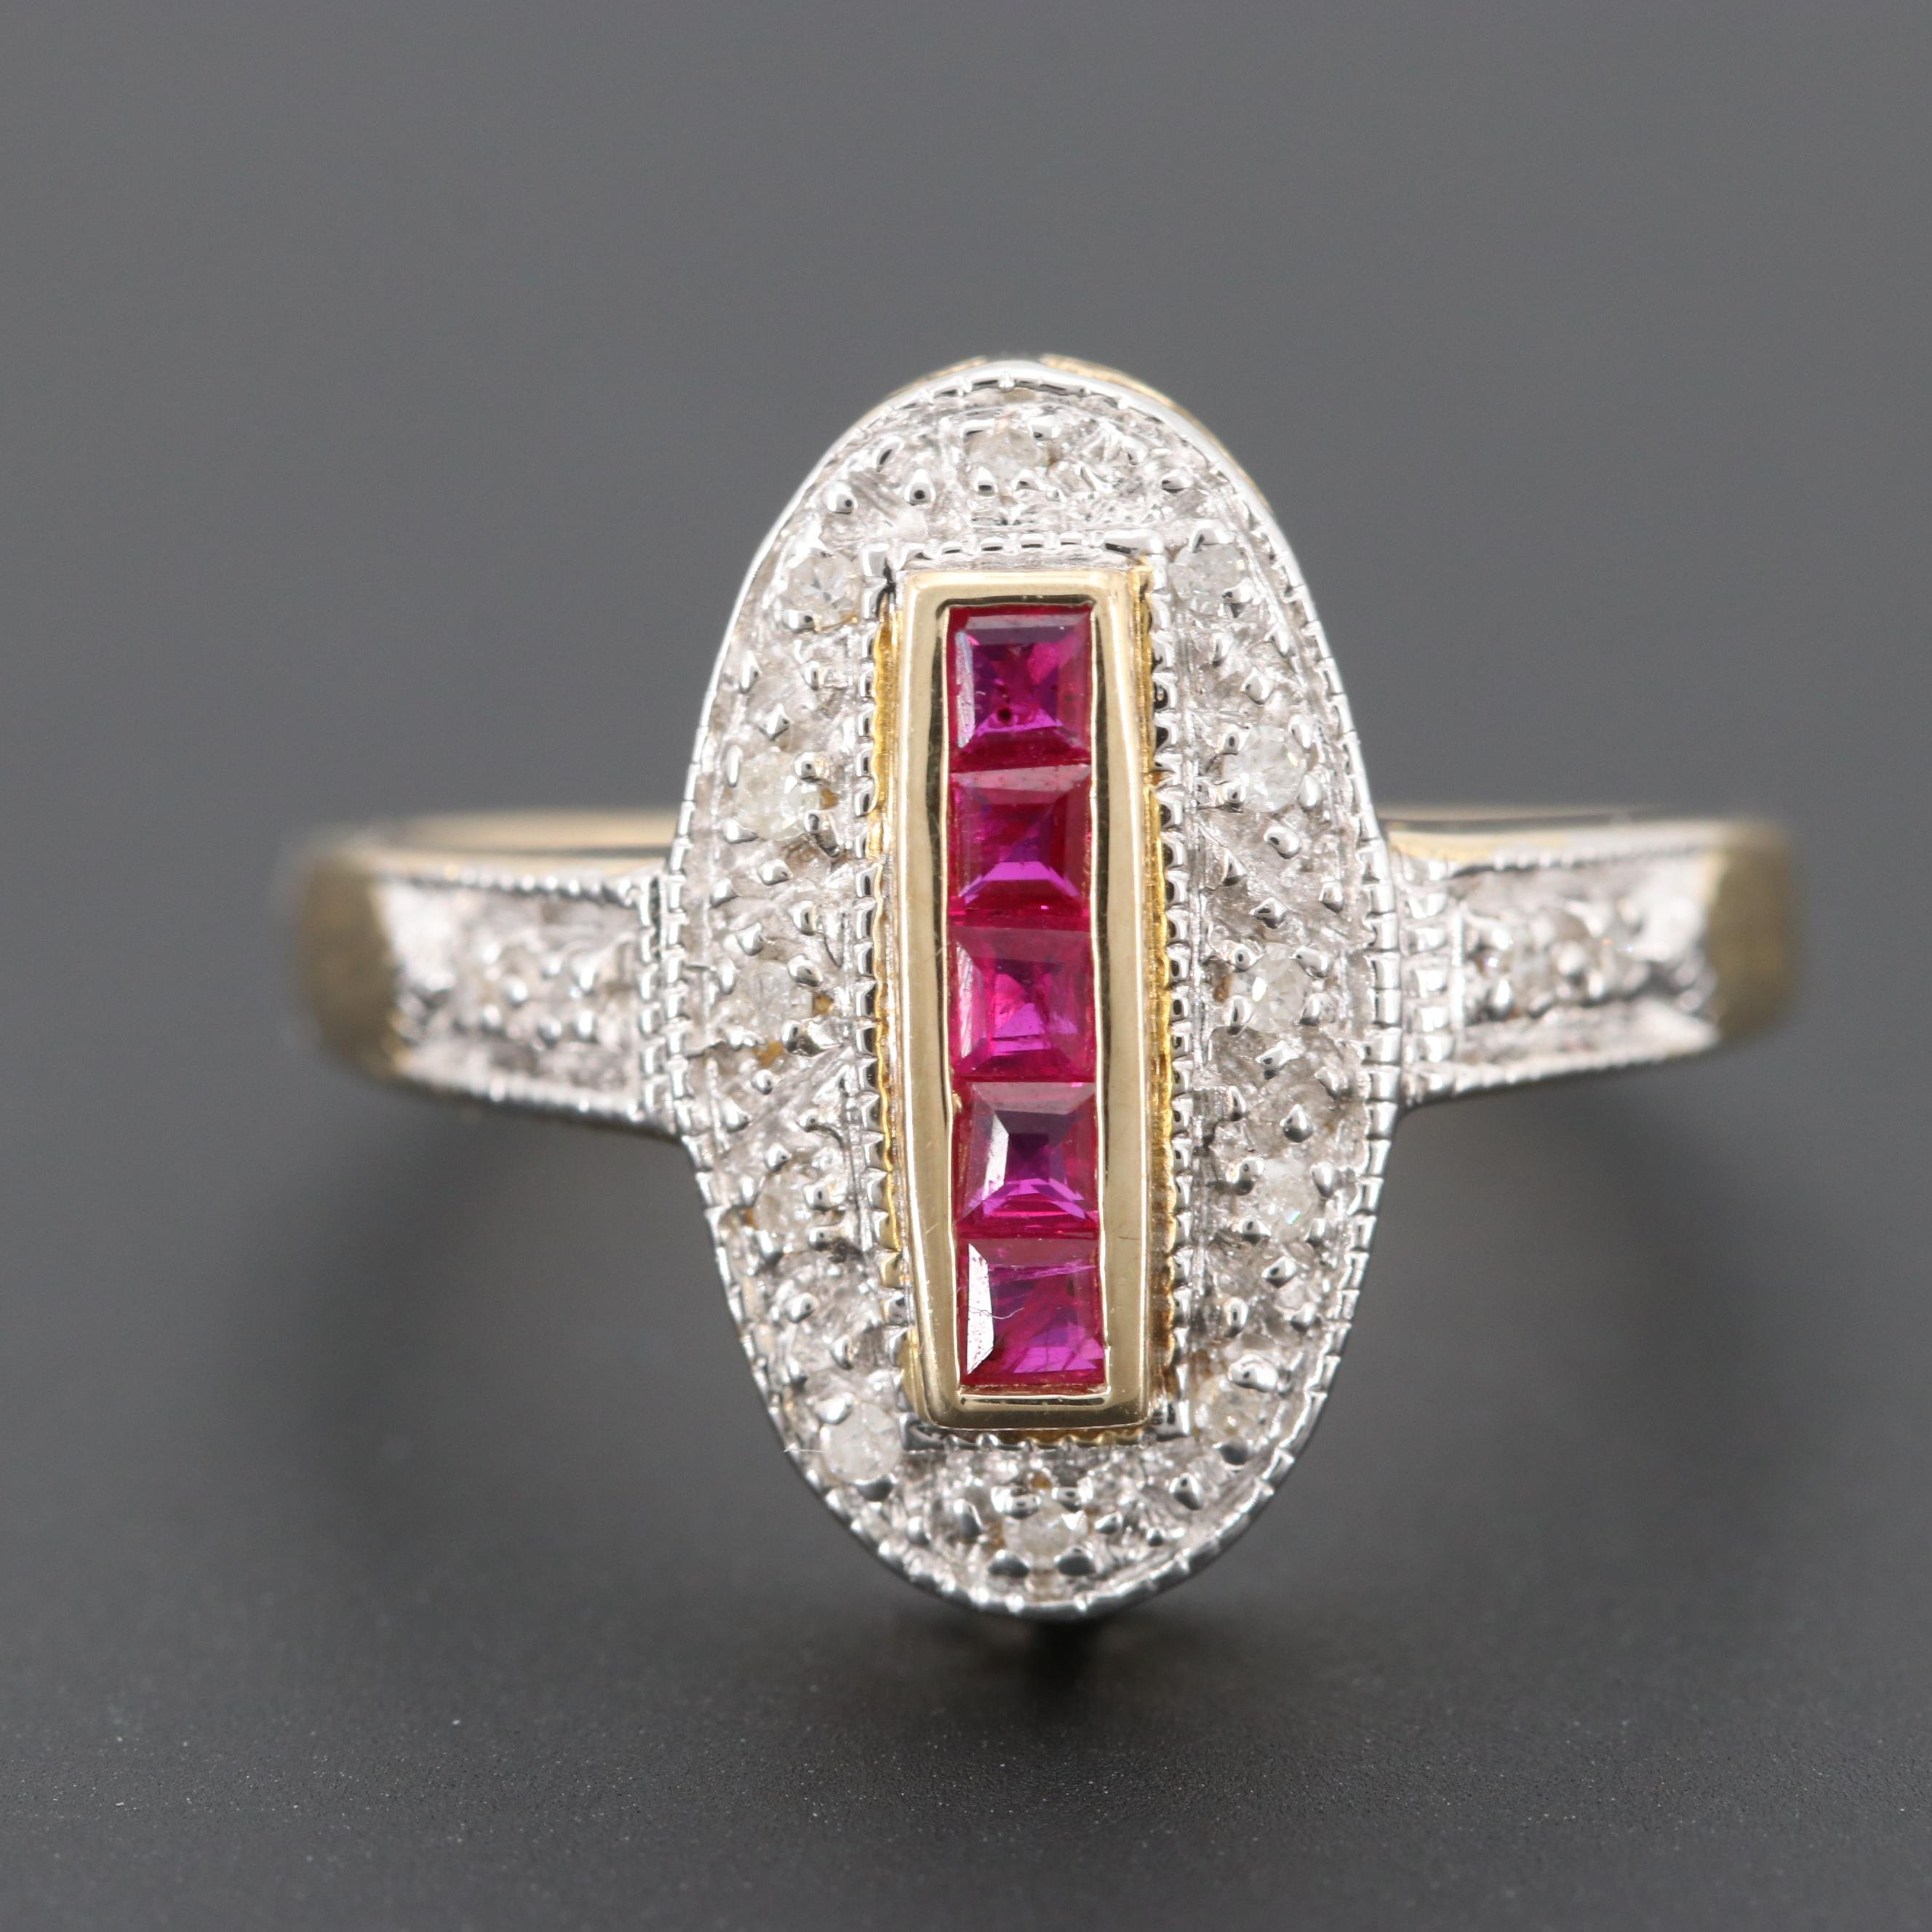 Vintage 9K Yellow Gold Ruby and Diamond Ring